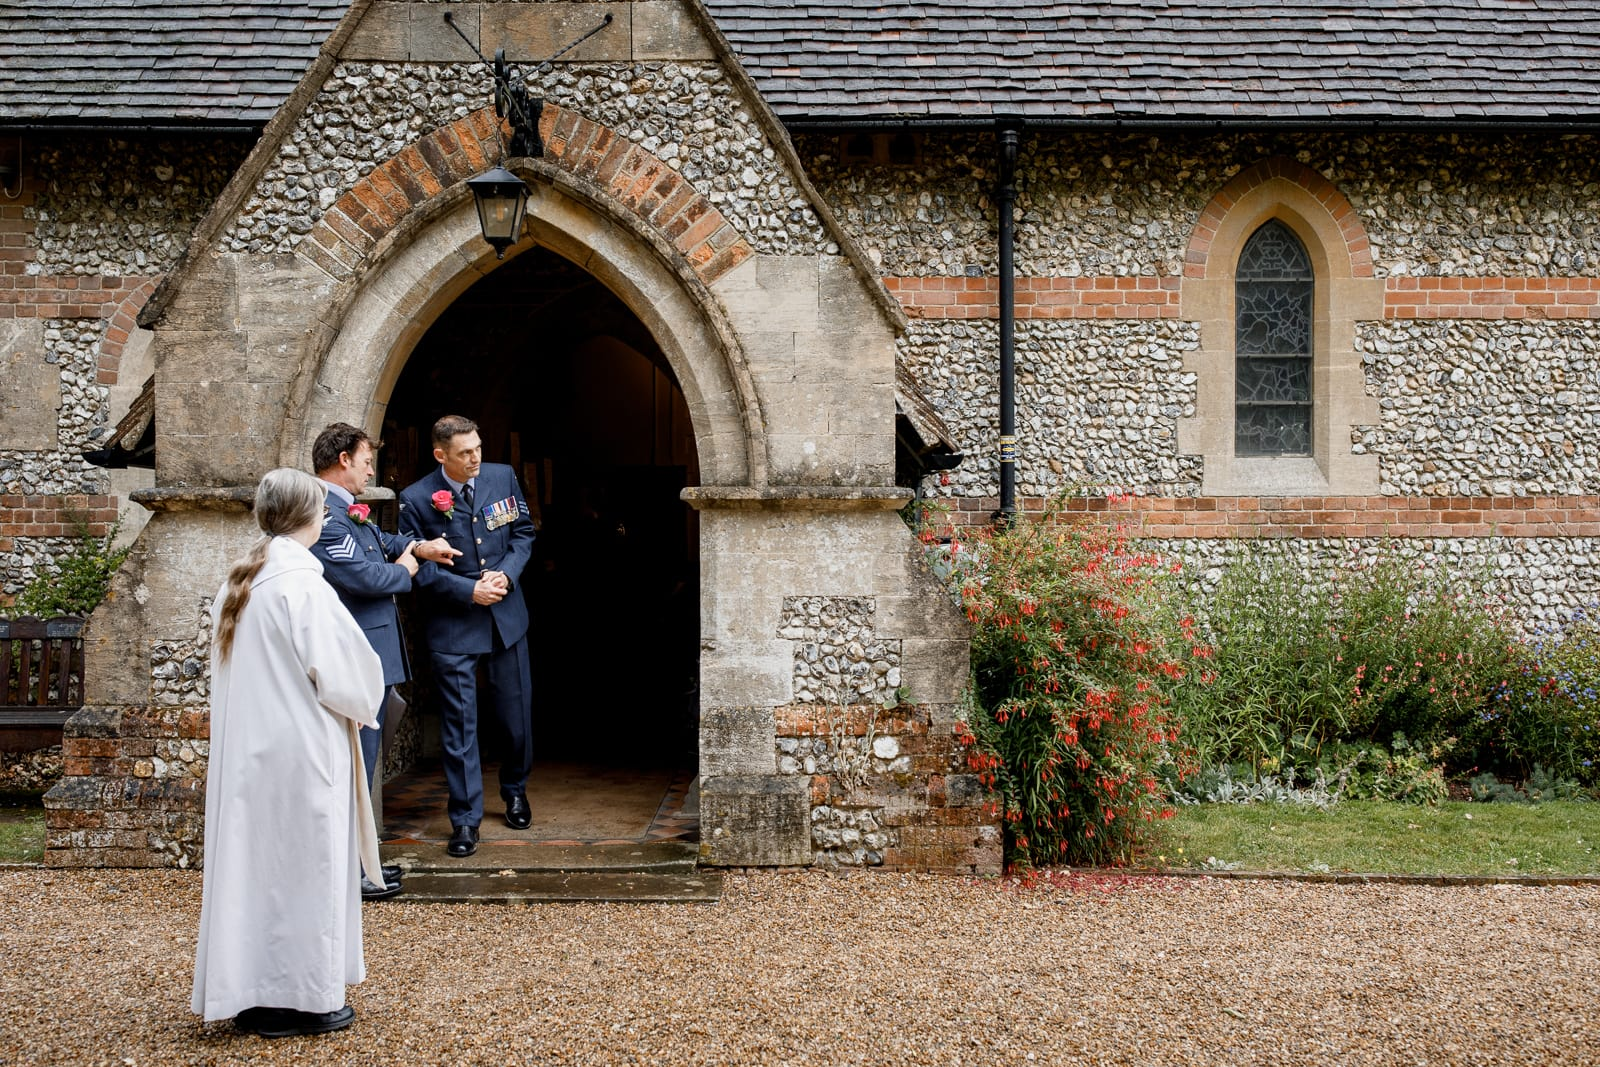 groom and best man outside all saints church wedding in coleshill